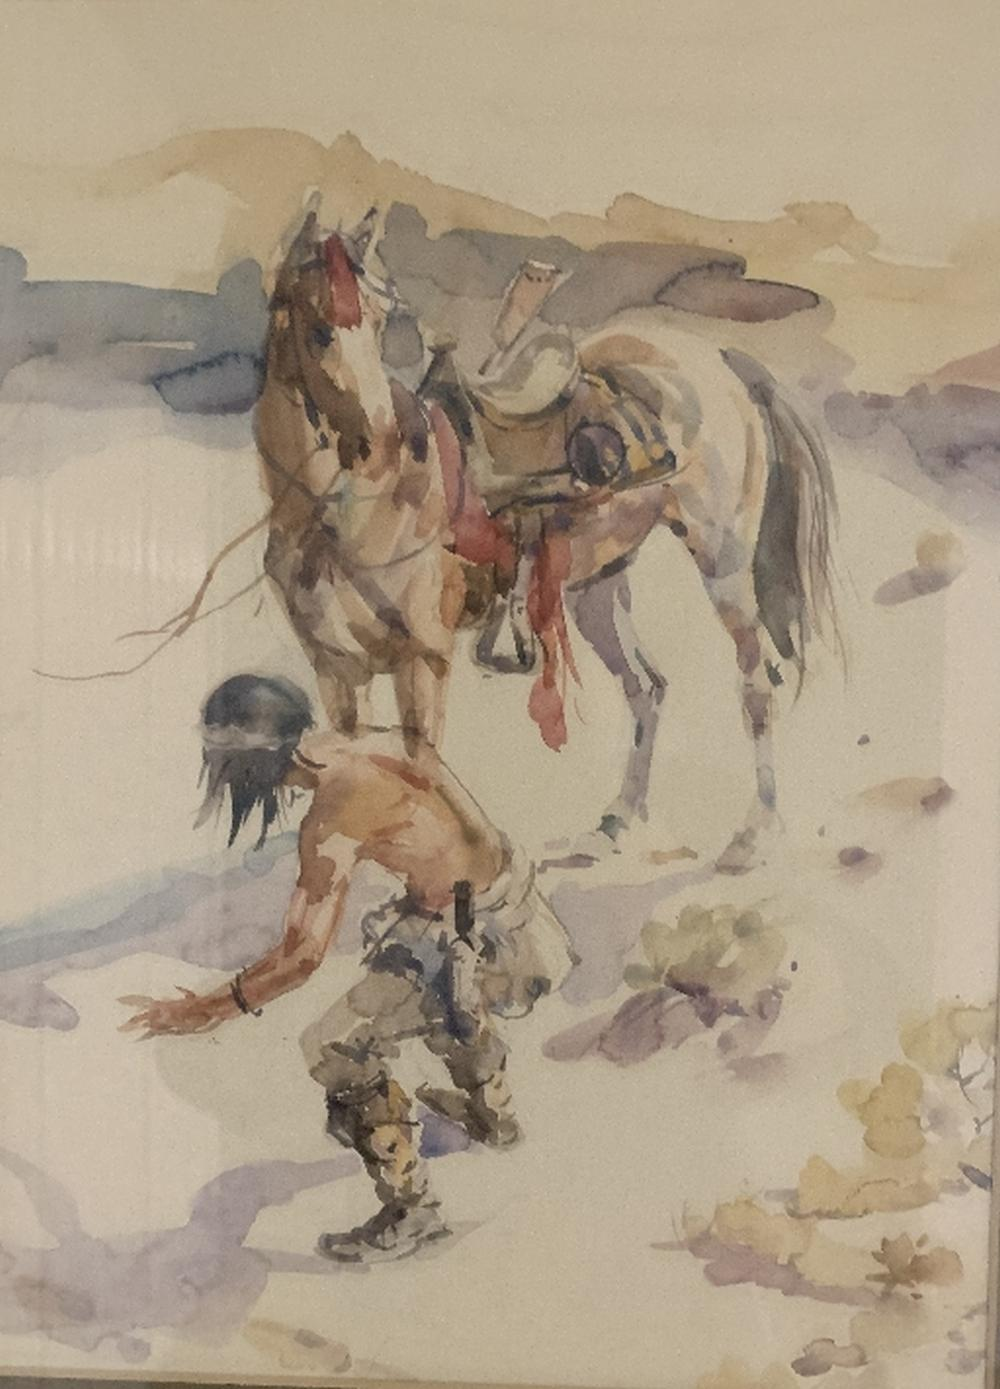 Sold Price Native Indian And Horse Manner Of Charles Marion Russell Watercolor Invalid Date Pdt